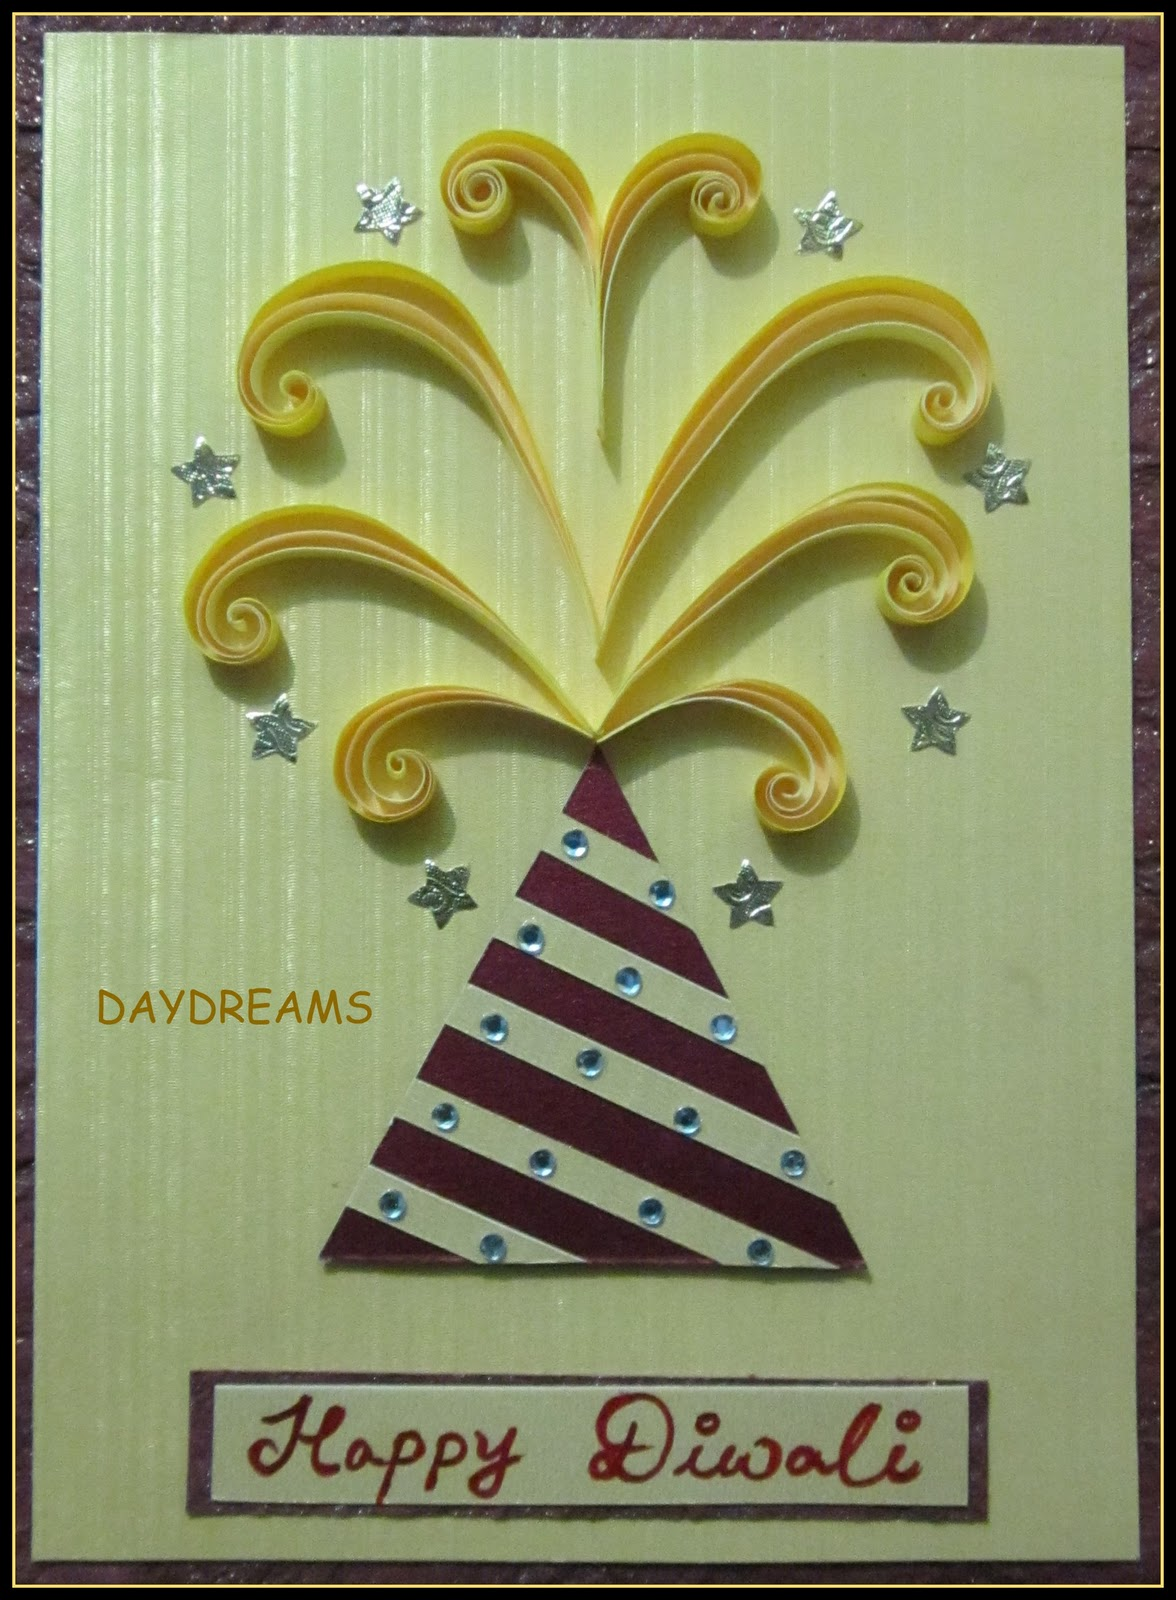 Diwali Greeting Card Making Ideas Part - 36: HAPPY DIWALI GREETINGS U0026 DEPAWALI WALLPAPERS,